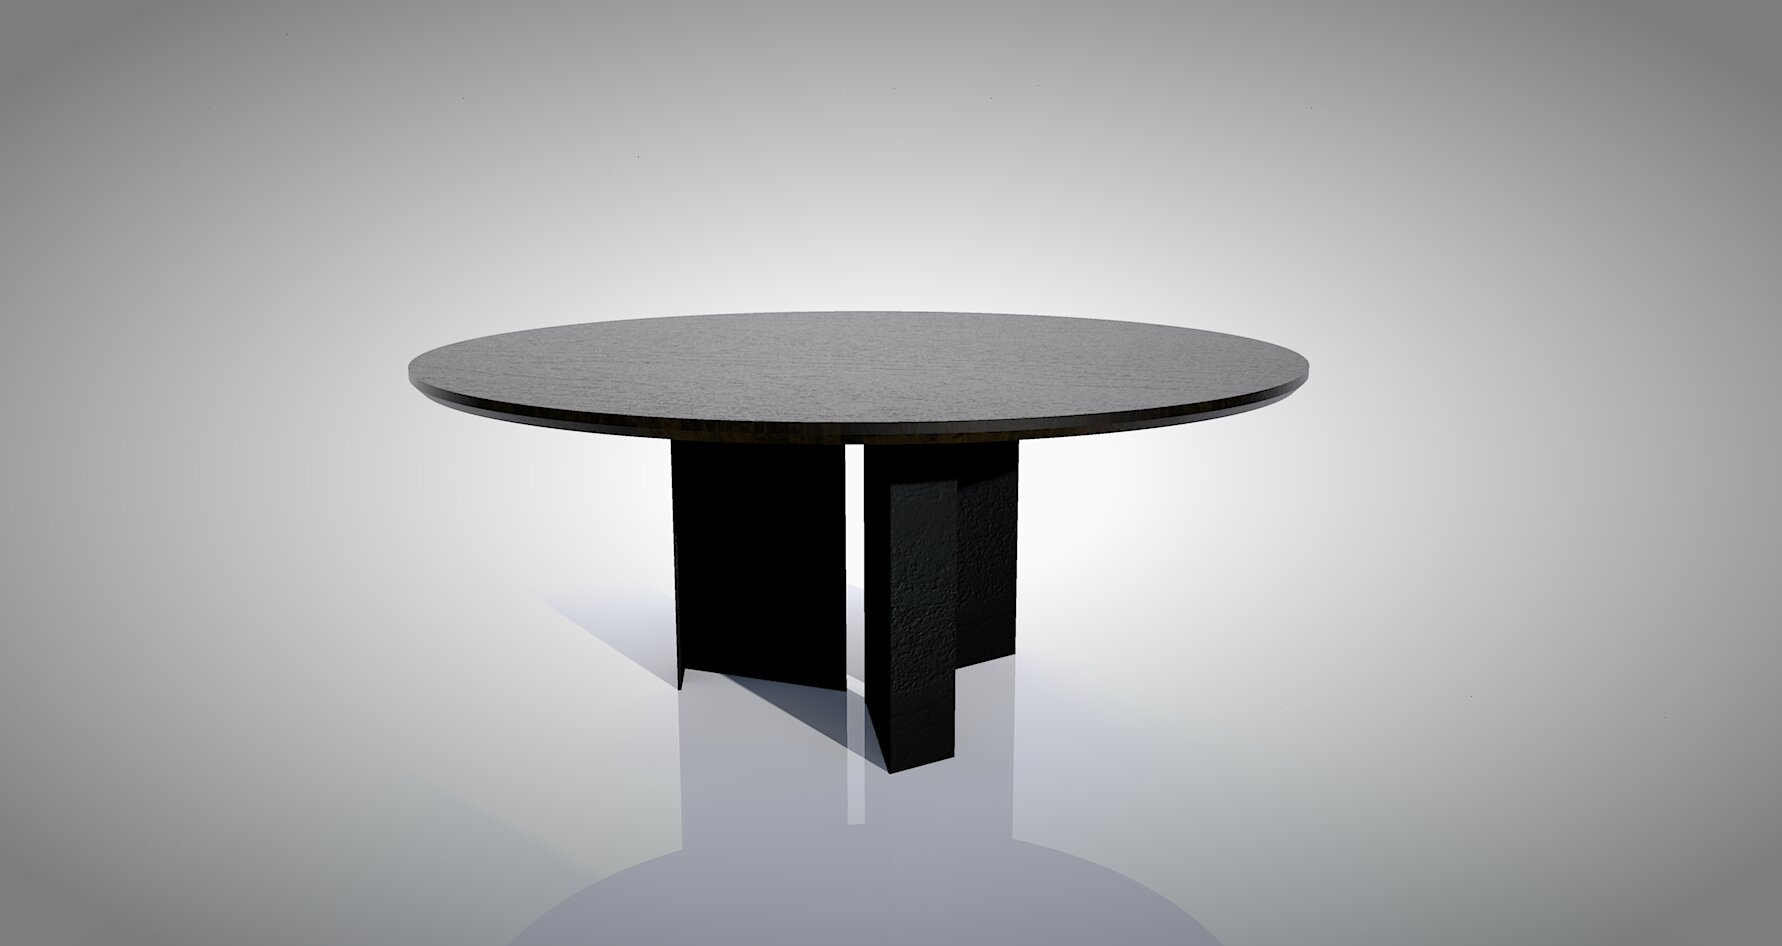 TABLE FINAL 1 SIEDERS EBONIZED.jpg